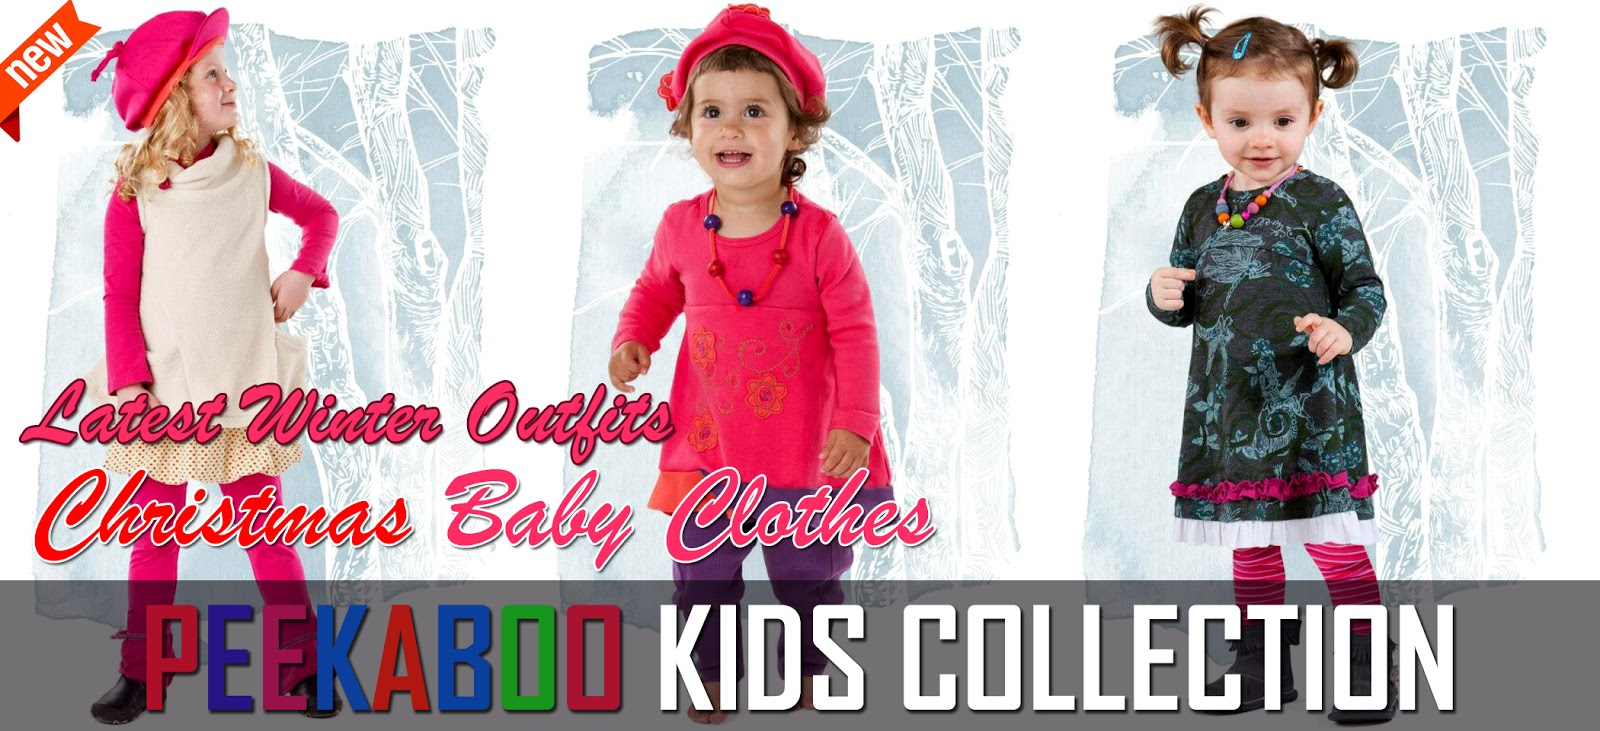 Peekaboo Winter Outfits 2012 13 For Kids Christmas Baby Clothes By